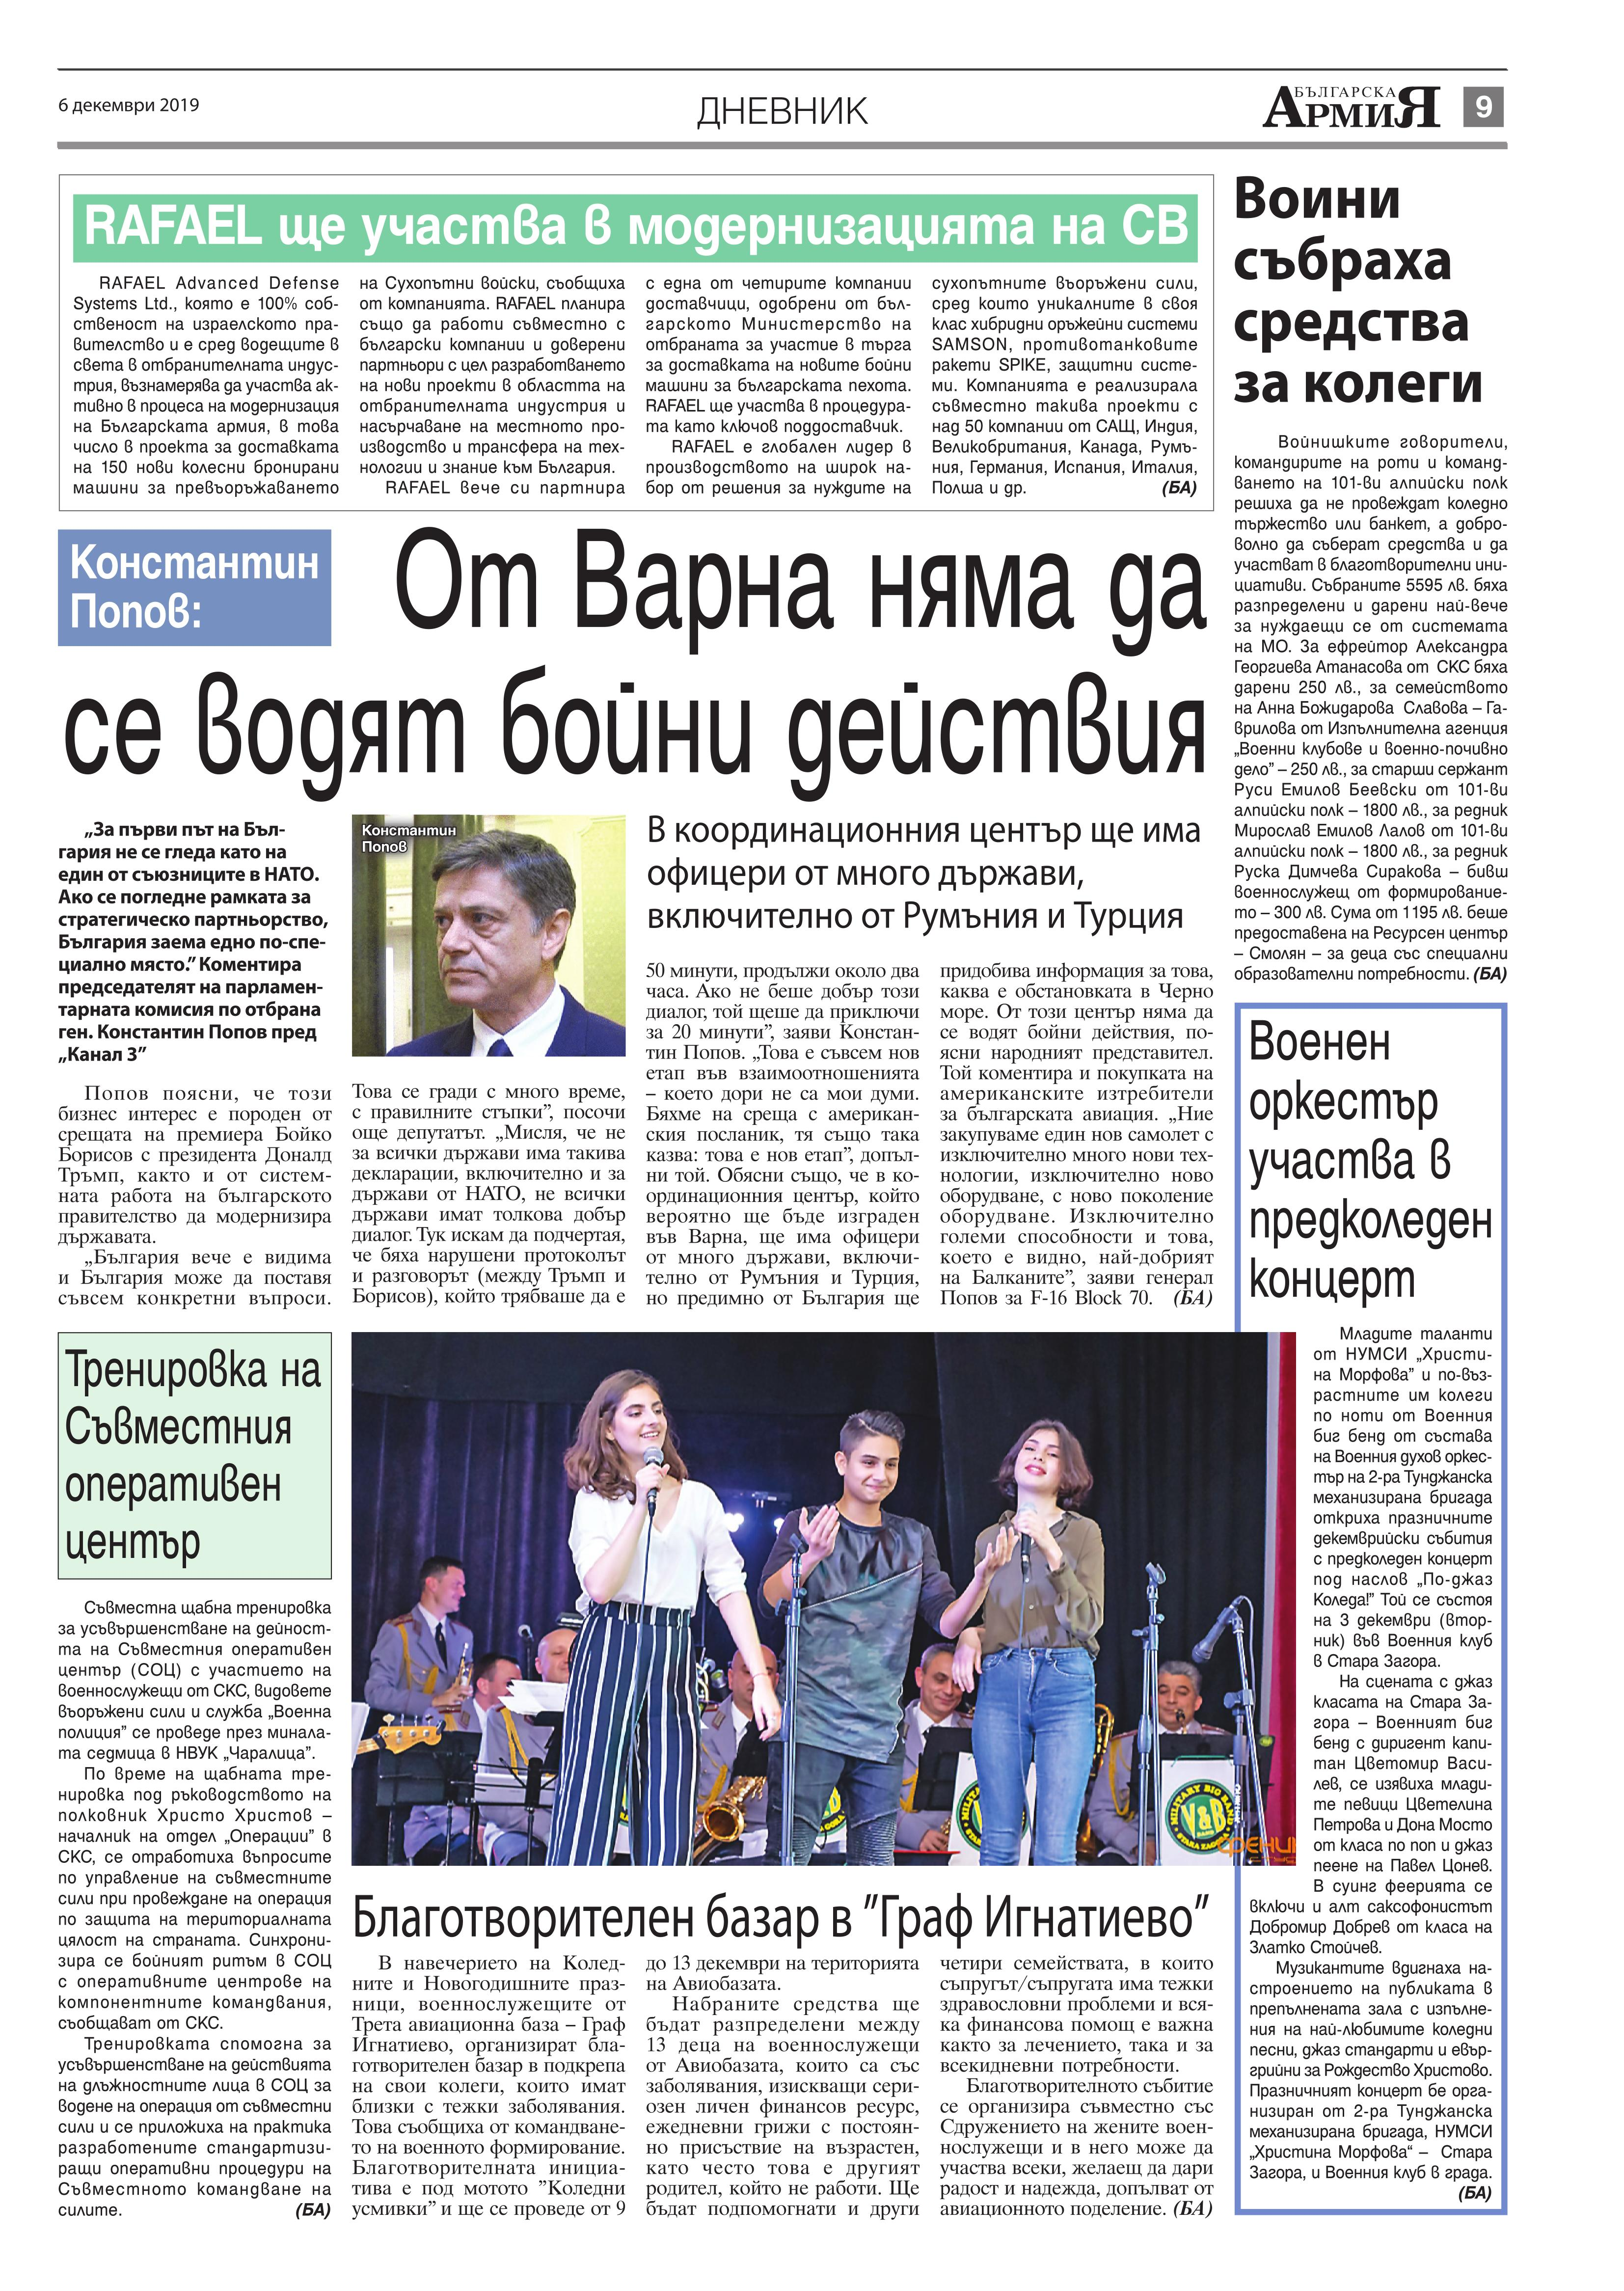 https://www.armymedia.bg/wp-content/uploads/2015/06/09.page1_-116.jpg